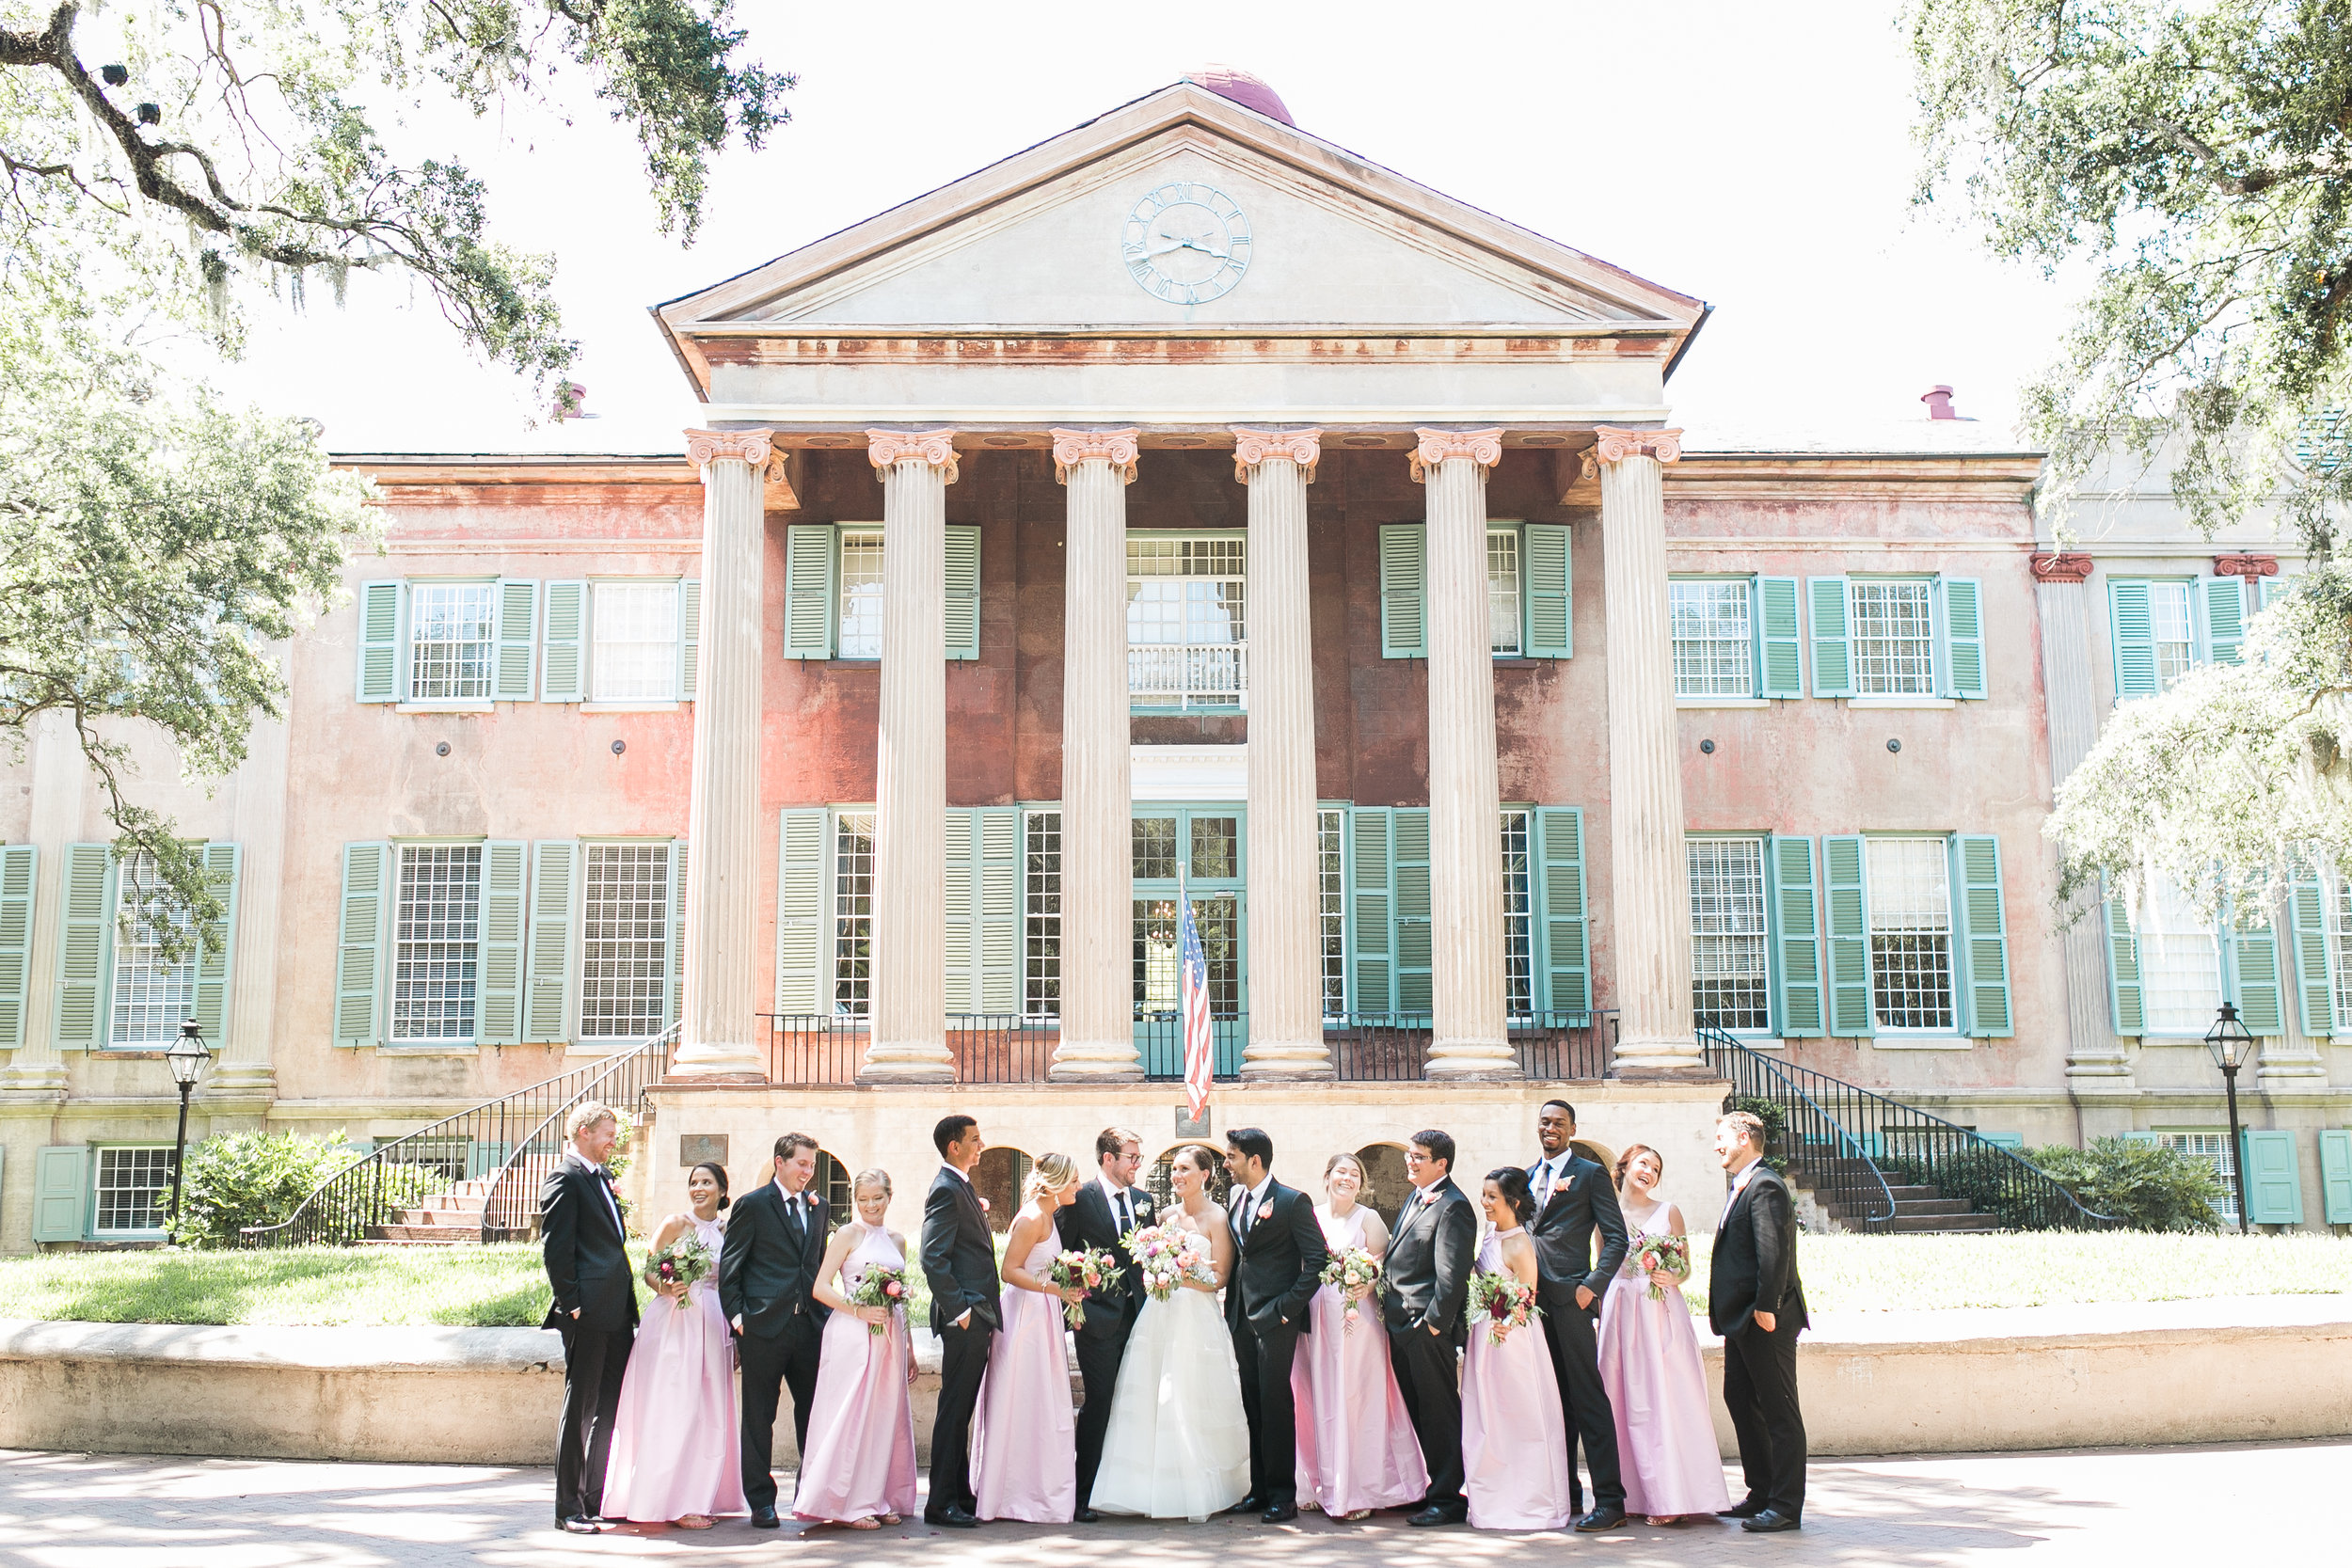 Charleston wedding portraits in front of the College of Charleston's Cistern by Jenna Marie Weddings  Colorful outdoor reception at The Thomas Bennett House wedding in Charleston, SC  //  photographed by Jenna Weddings  Traditional wedding ceremony at Cathedral of St. John the Baptist in Charleston, SC  //  A Lowcountry Wedding Magazine & Blog